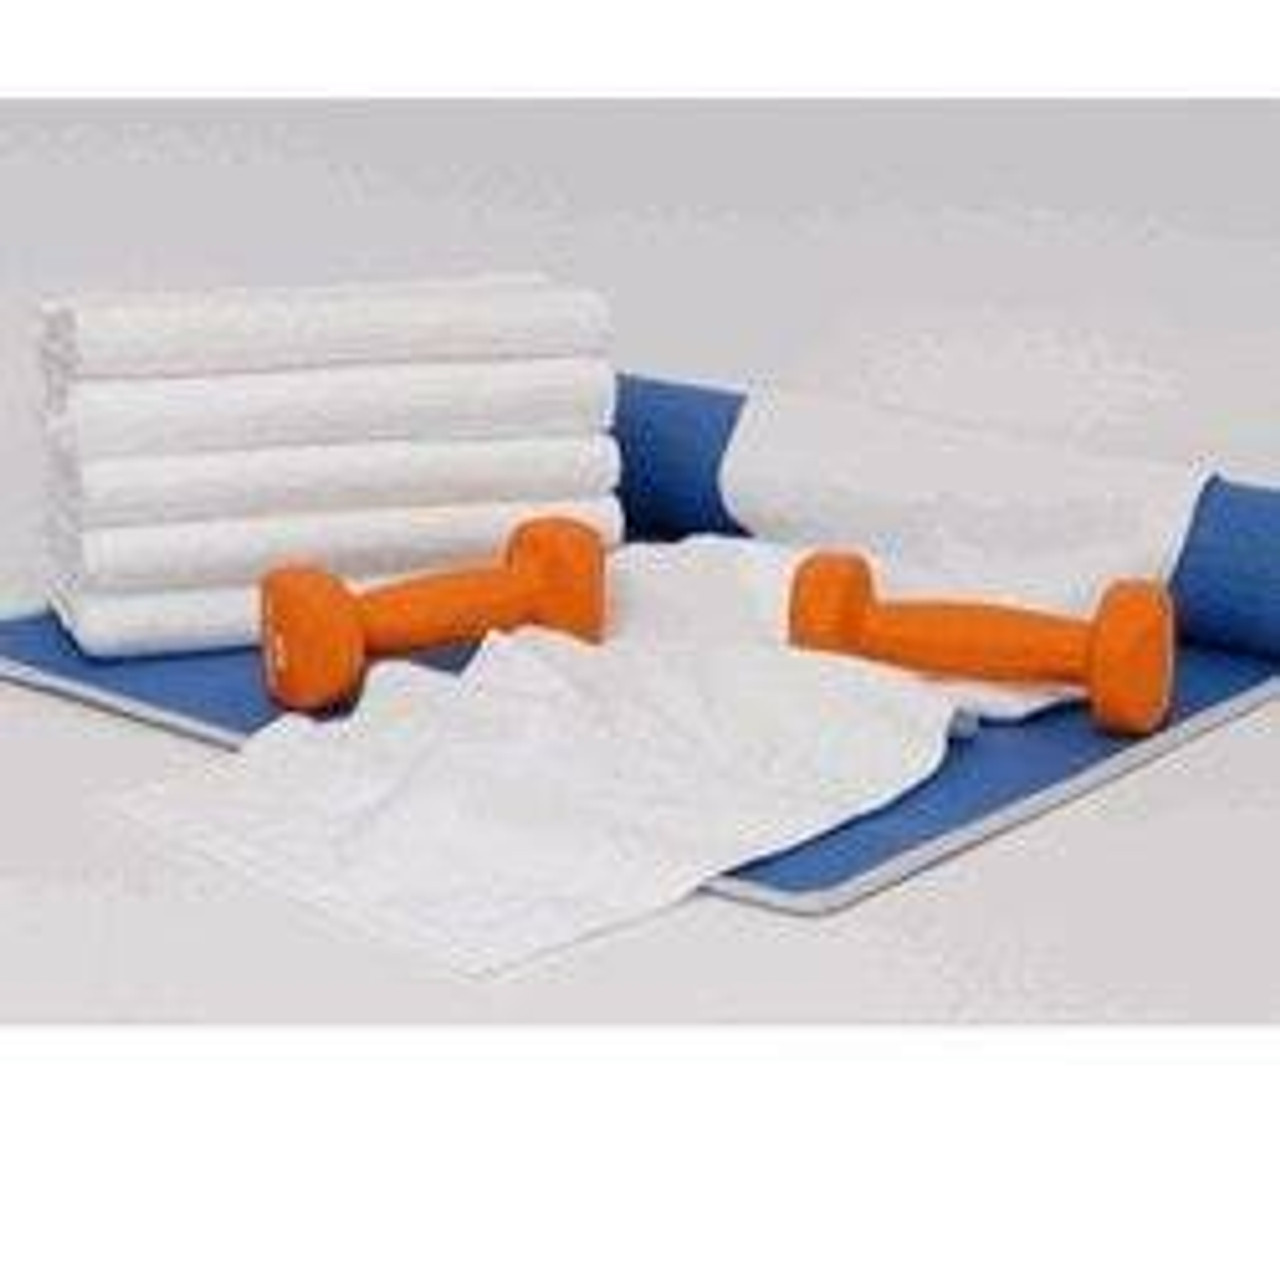 1888 Mills 1888 Mills Best Gym Towels for Sports and Fitness